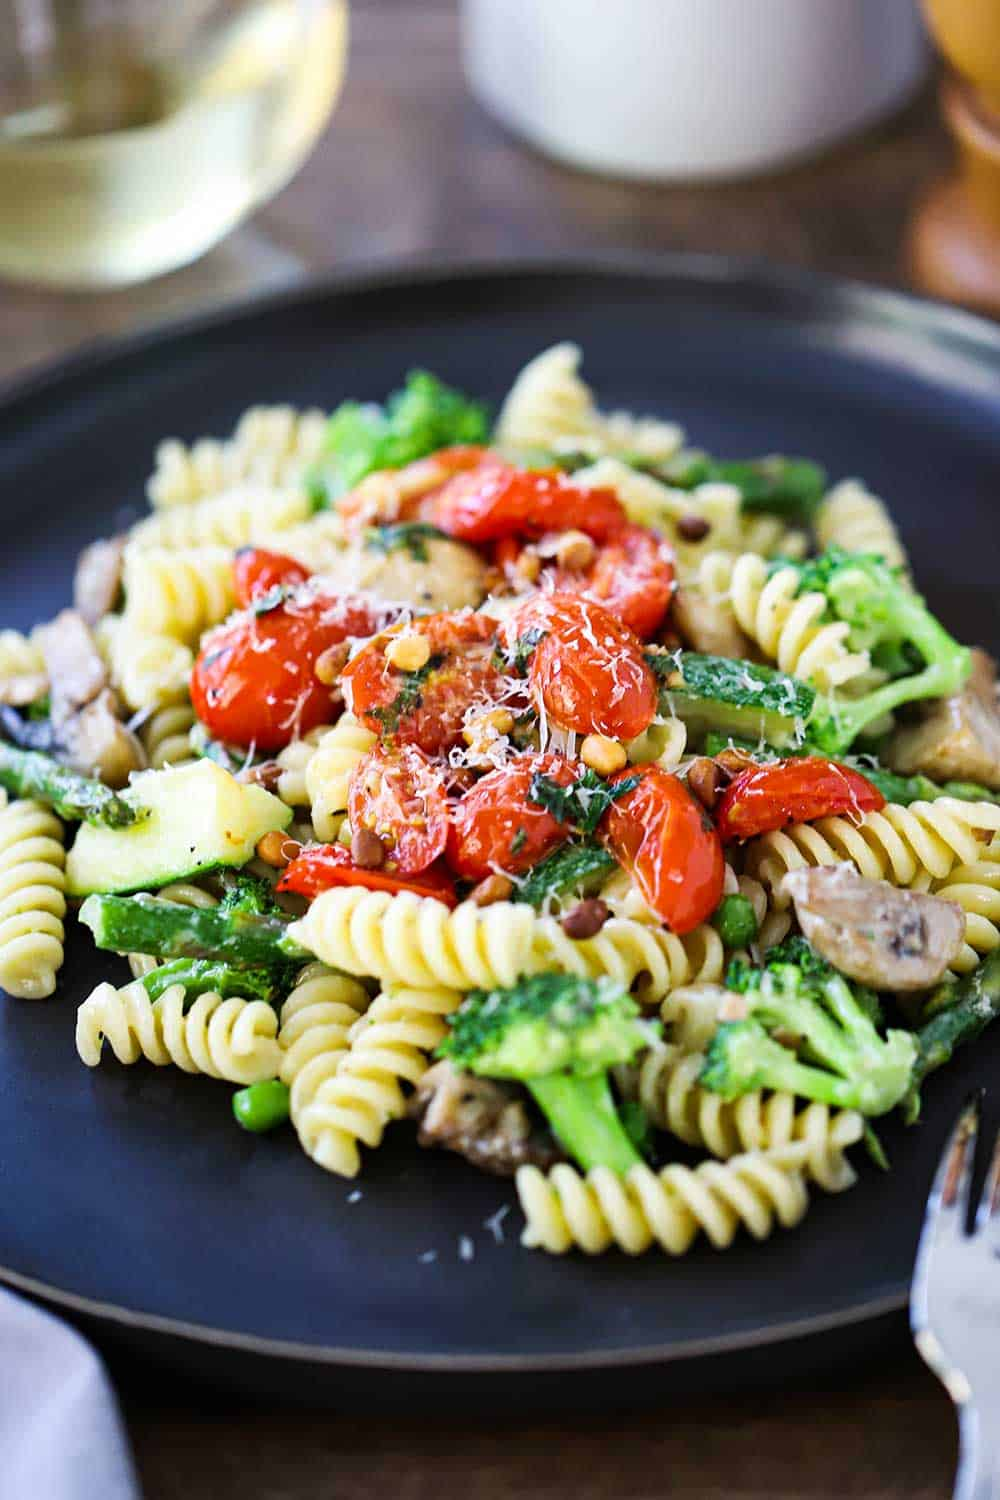 A dark dinner plate filled with a serving of pasta primavera with sauteed tomatoes on top.